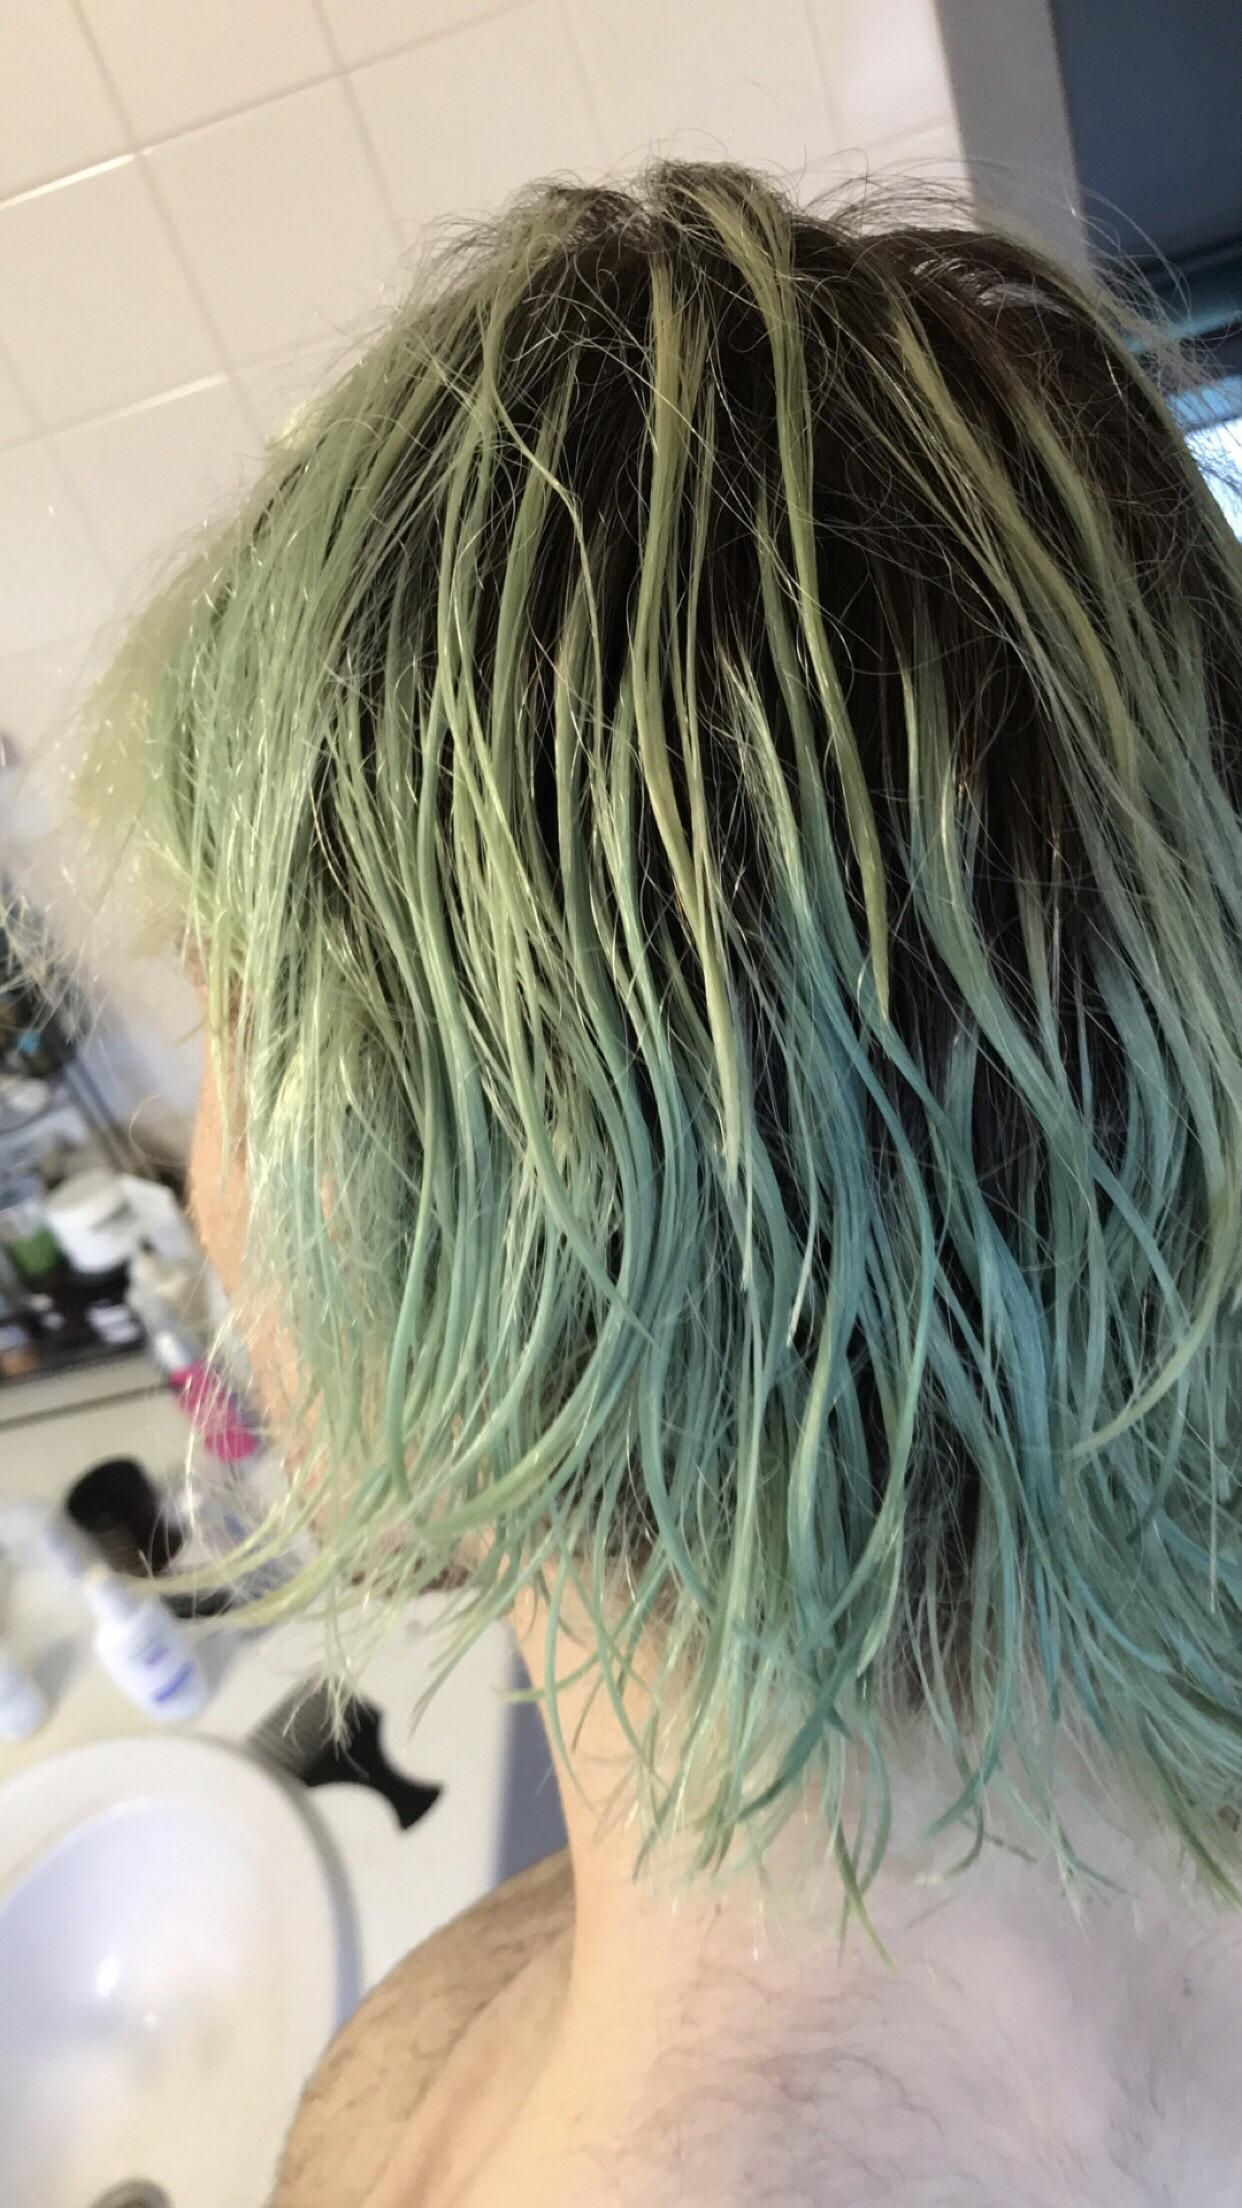 I Dyed My Bleached Hair A Mixture Of Blue Purple Tried To Remove Colour To Go Back To Blonde With Vitamin C And Co Bleached Hair Hair Color Remover Hair Stain